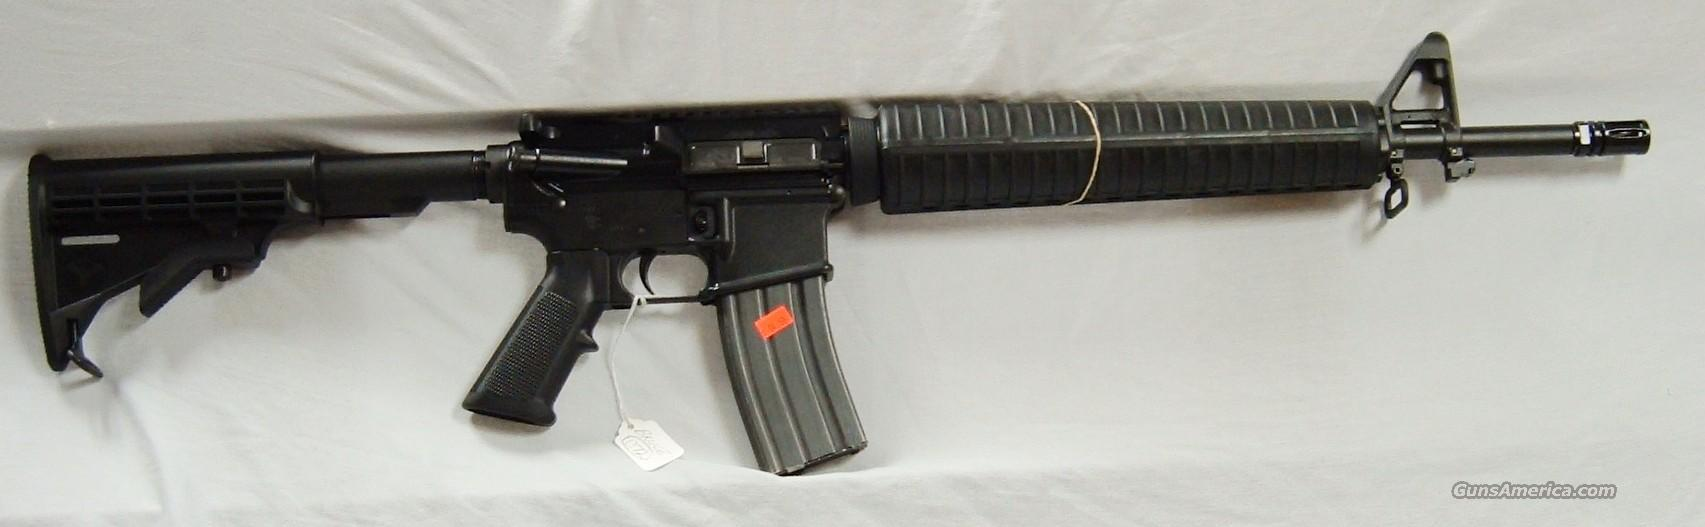 Double Star AR15  Guns > Rifles > AR-15 Rifles - Small Manufacturers > Complete Rifle